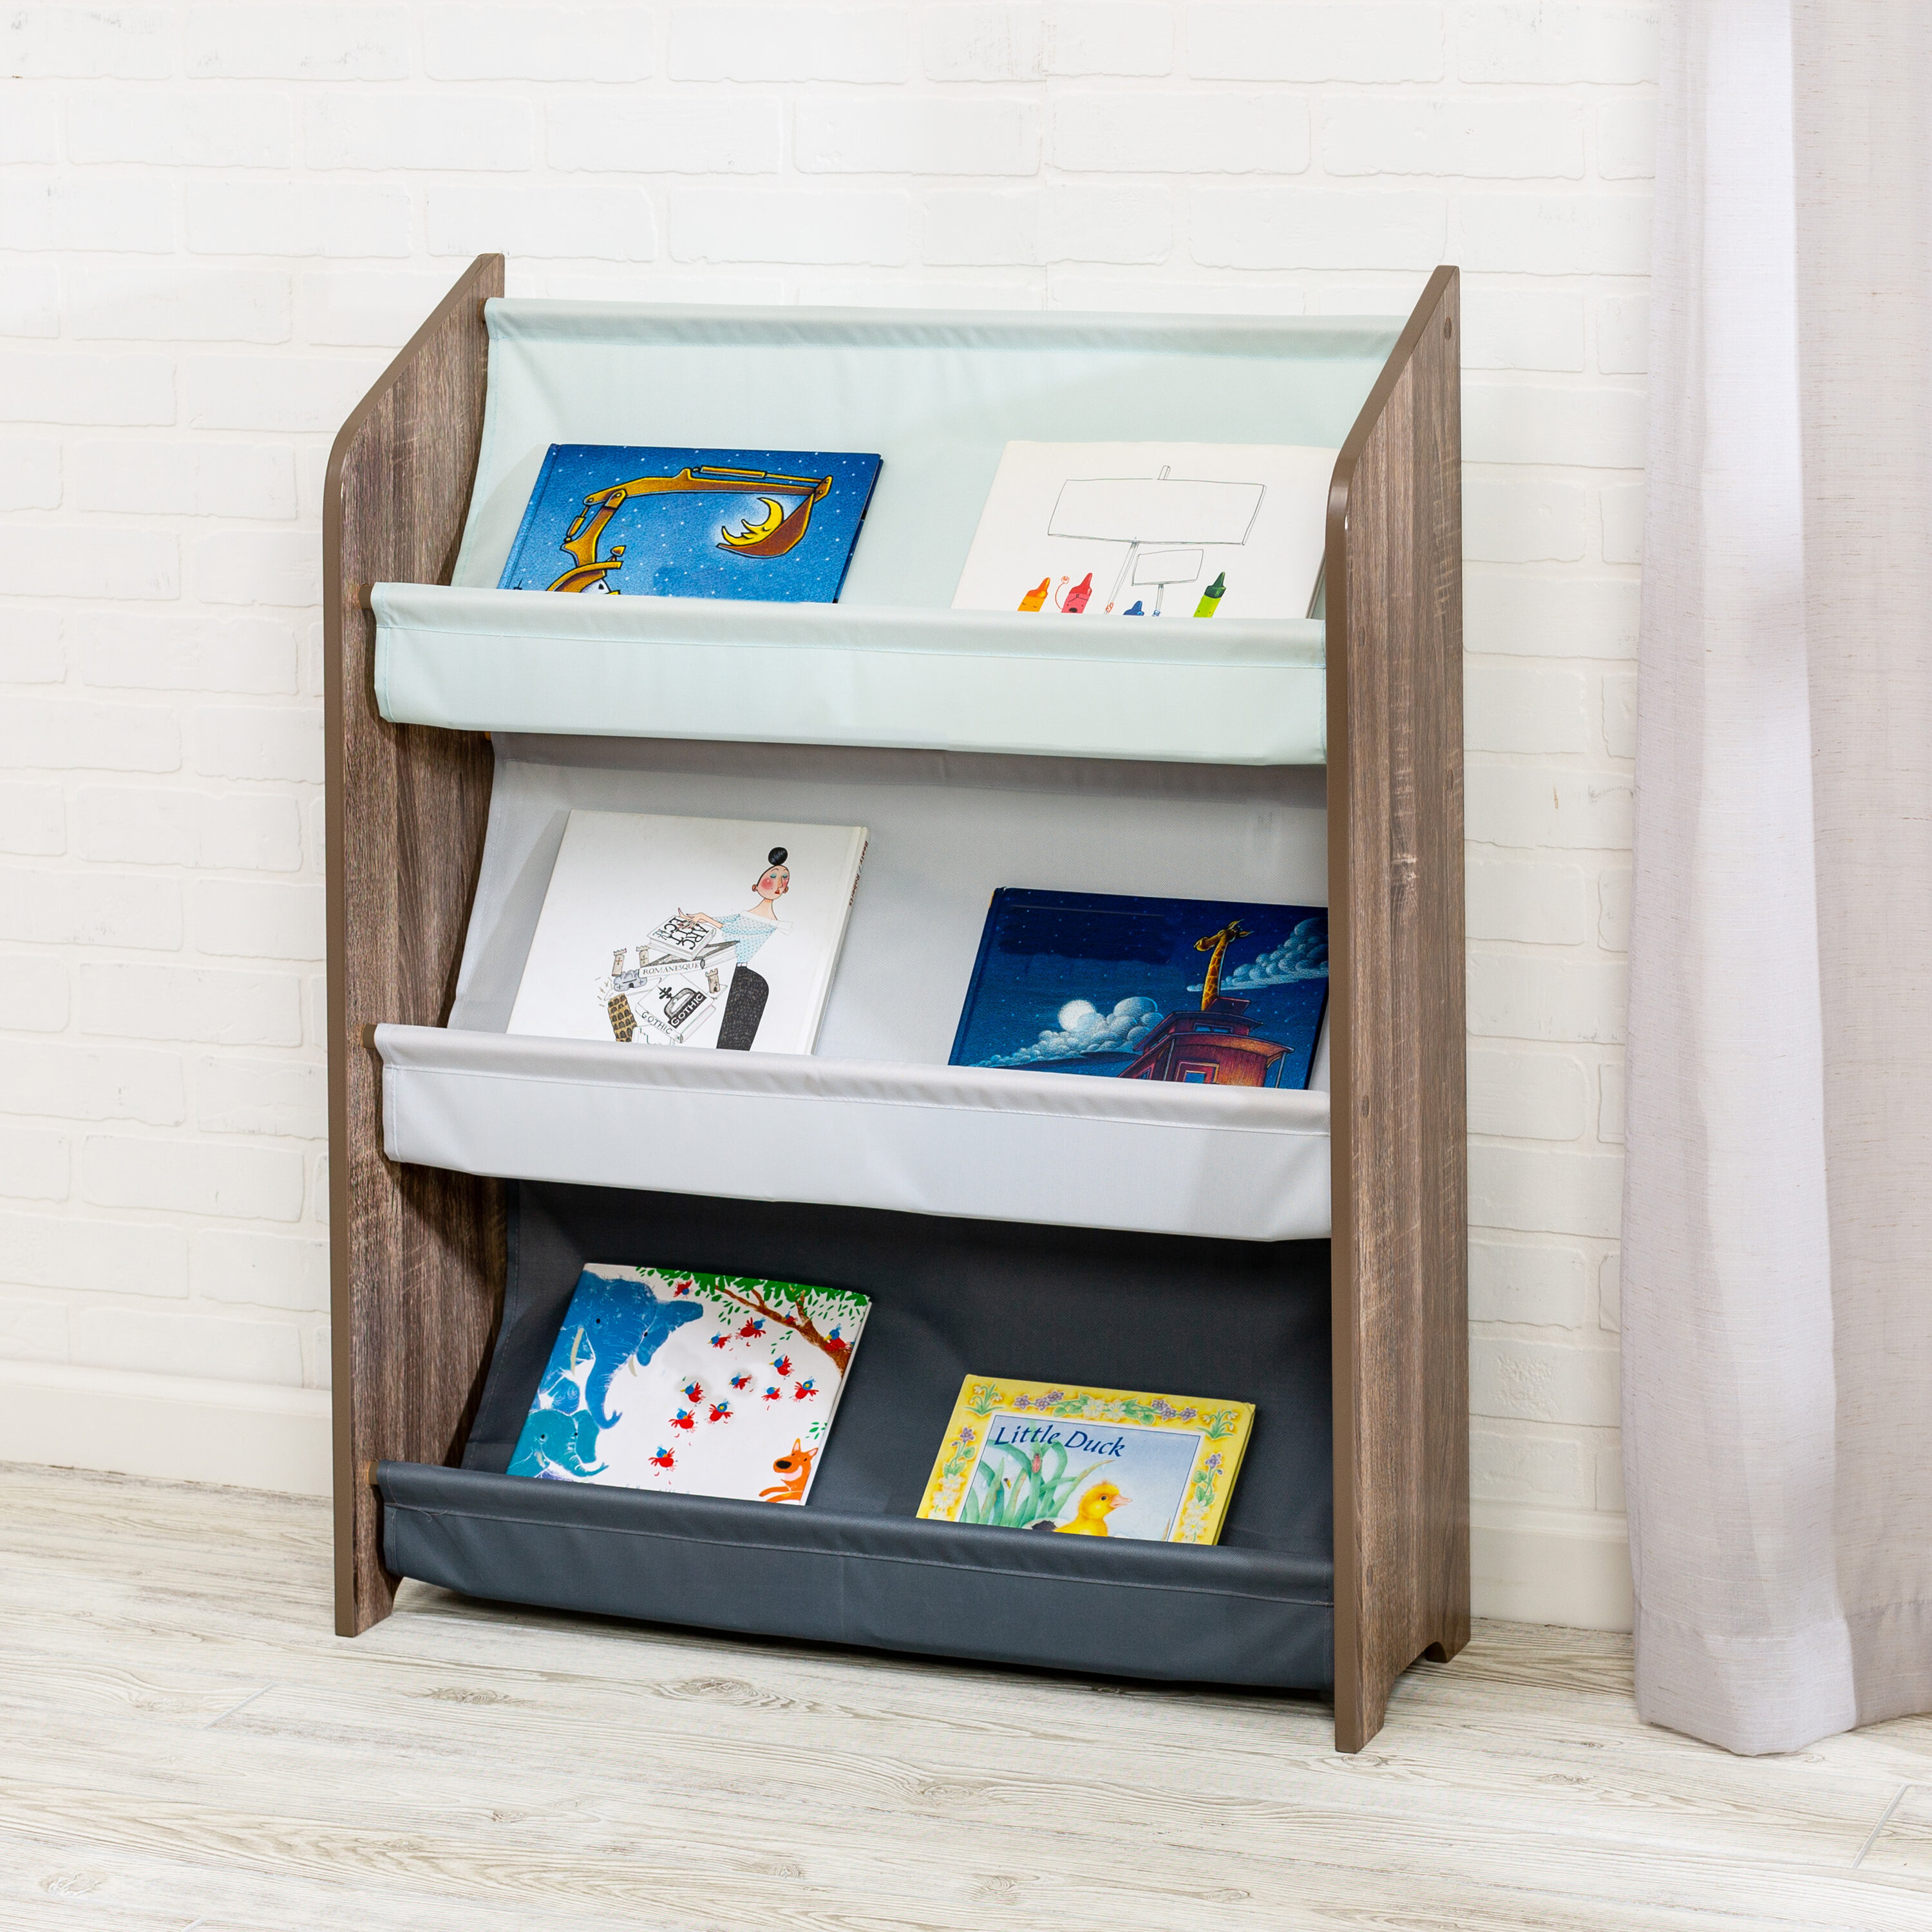 Brackets & Clamps Brackets Furniture Bookcase Shelve Toy Storage Rack Multi-color Pocket Wooden Shelf For Kids Wooden Book Storage Convenient To Cook